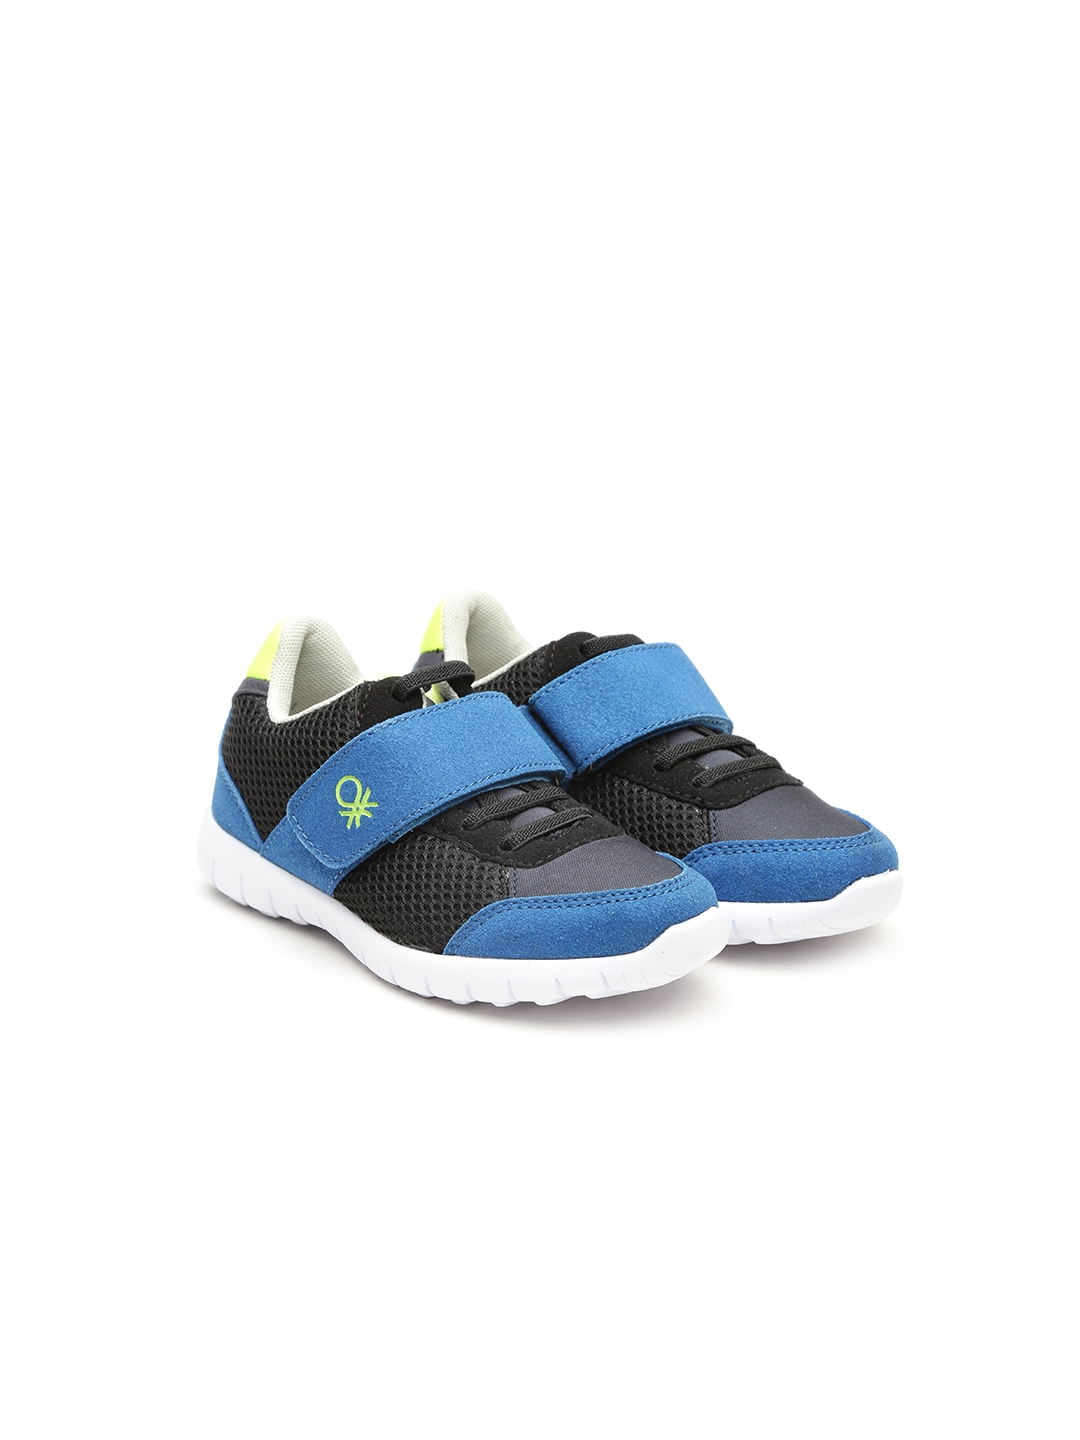 d69399d1b269 Buy United Colors Of Benetton Boys Black   Blue Sneakers - Casual ...